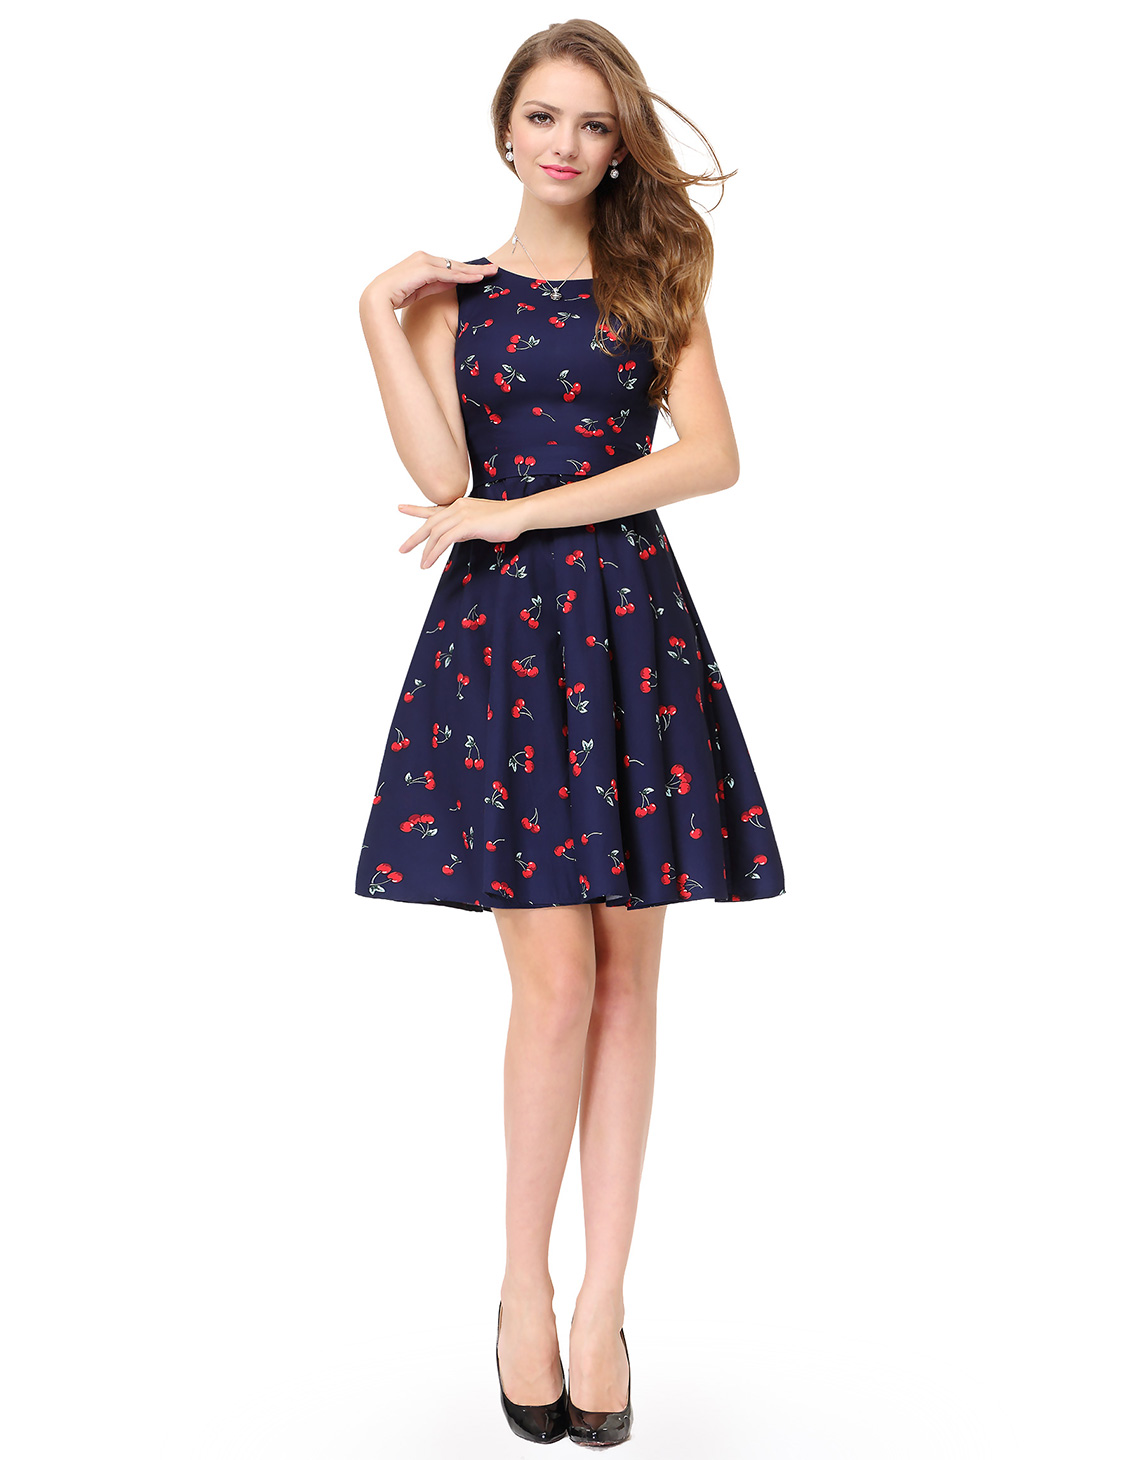 38dc83d7a27 Alisa Pan Womens Sleeveless Floral Printed Casual Dresses 05488